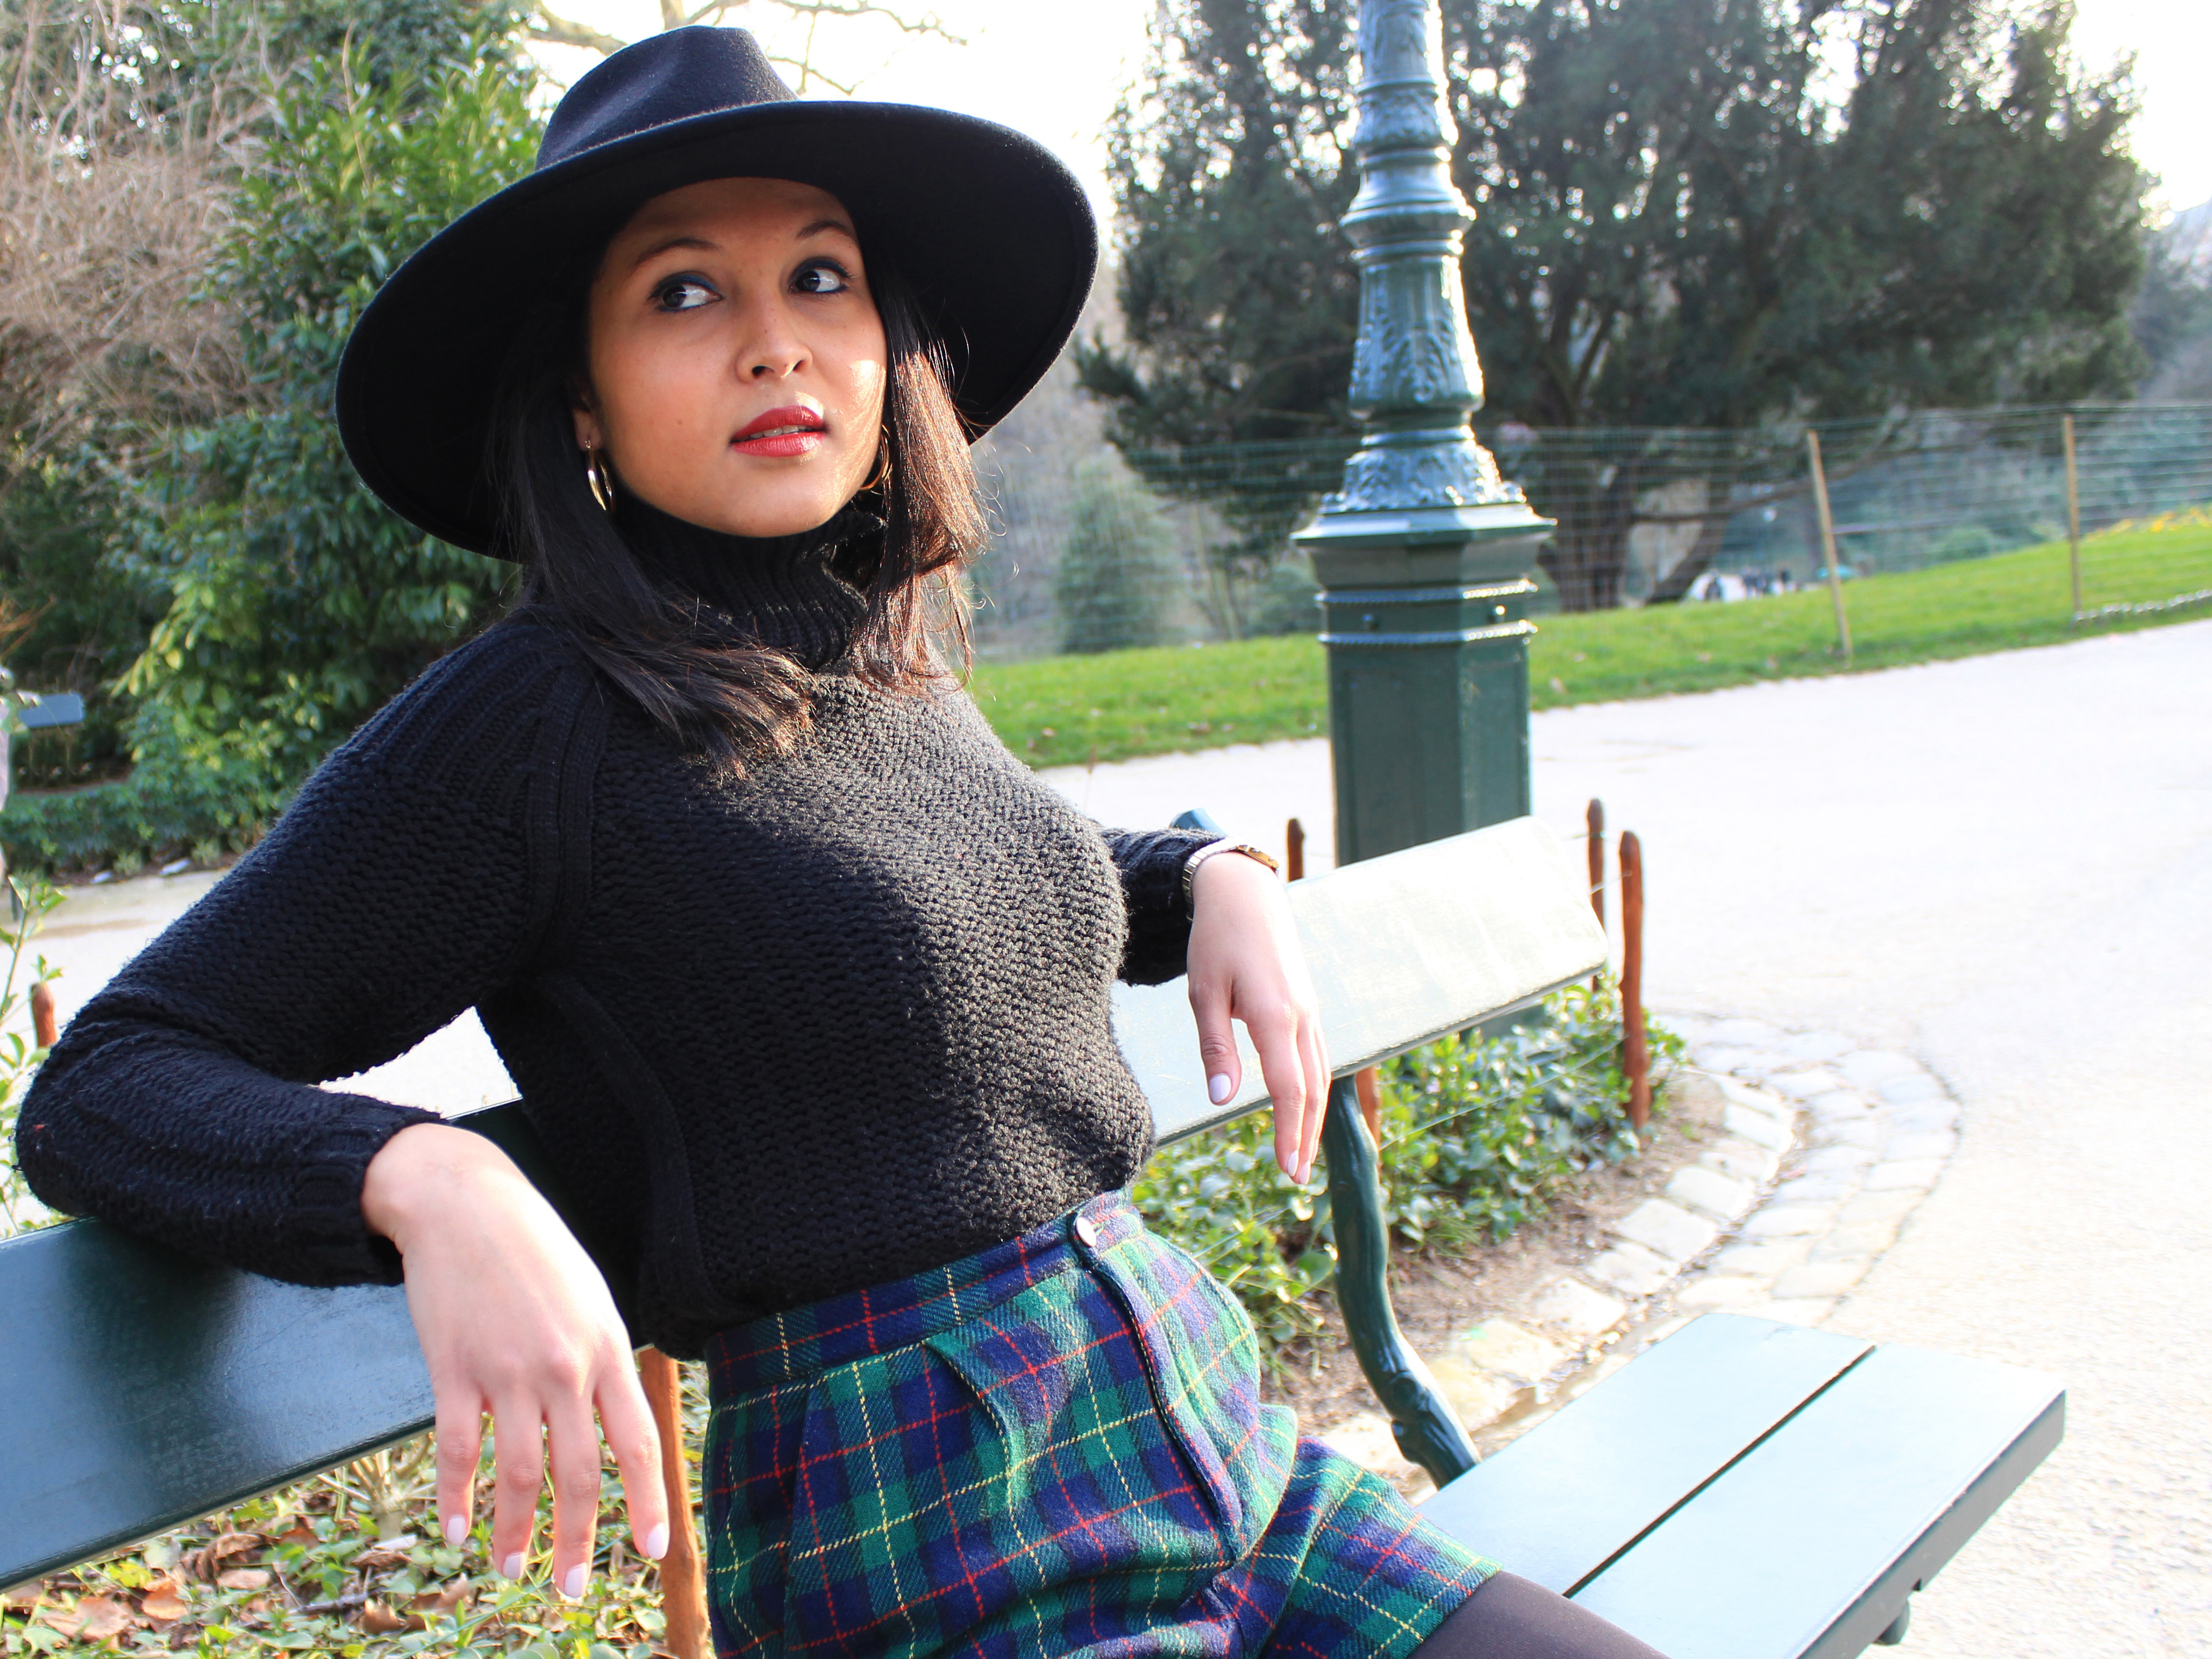 Soleil d'hiver_chapeau-Zara-col_roule-Pull-and-Bear_Short_Tartan_Boots-Asos-3